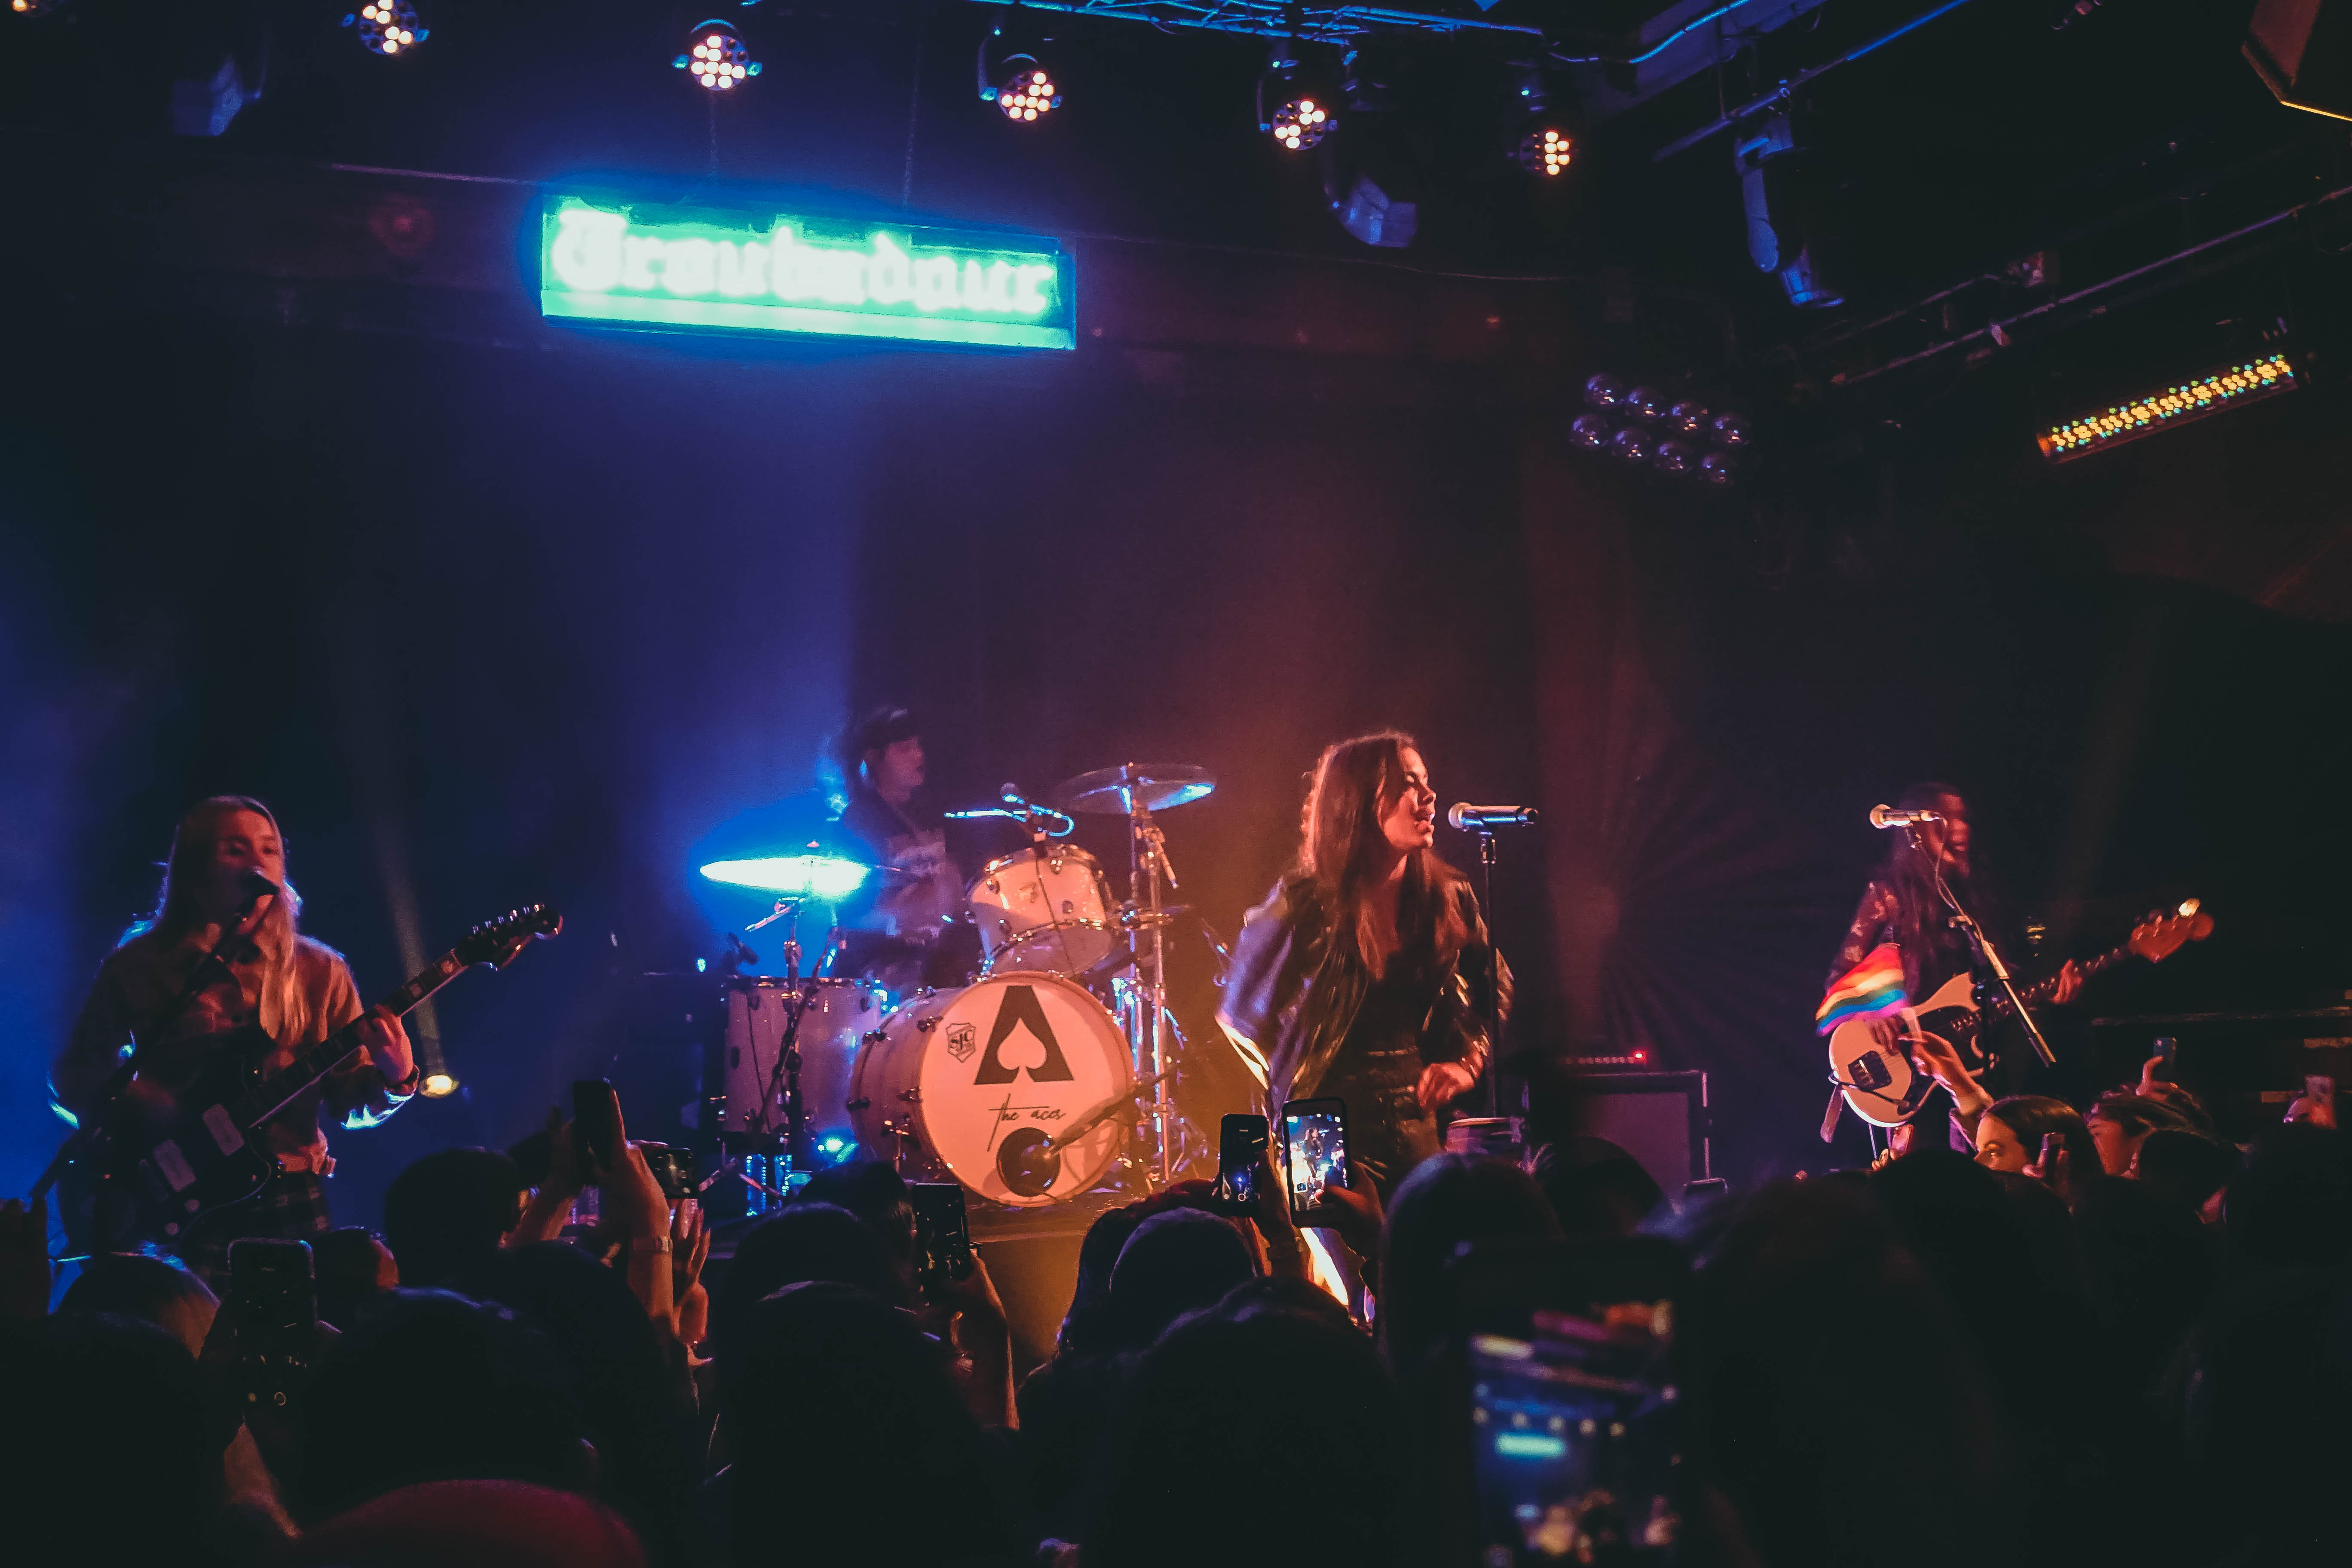 The Aces are your next best rock band, who just happen to be all